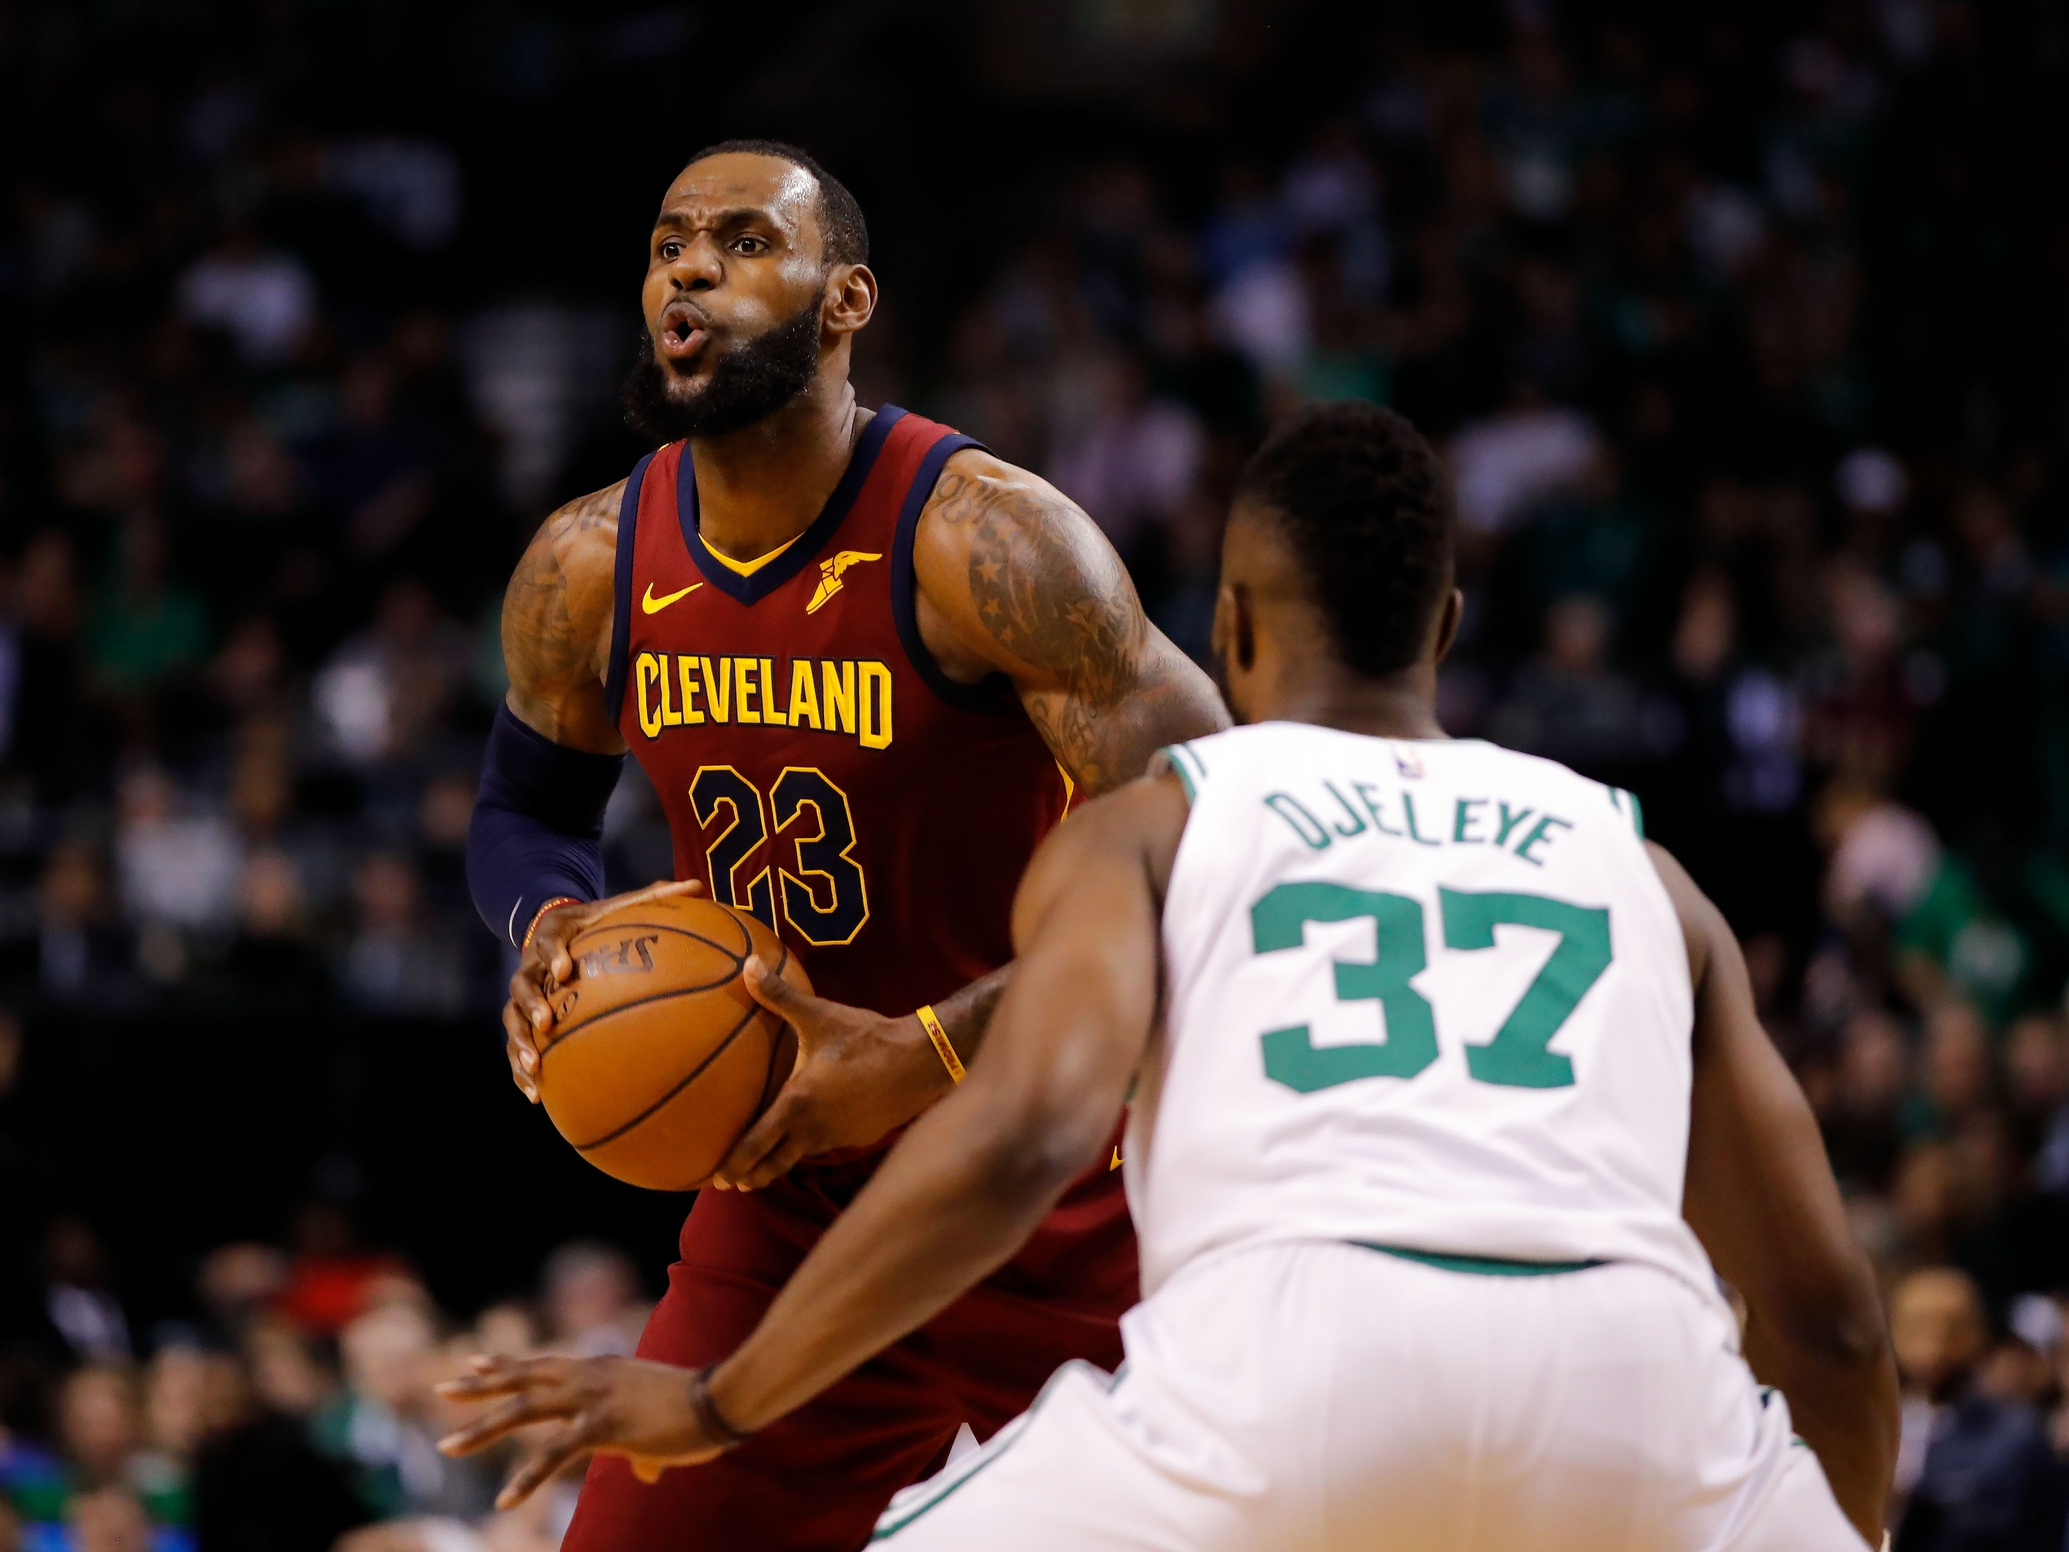 Semi Ojeleye may have finished off the Cavaliers